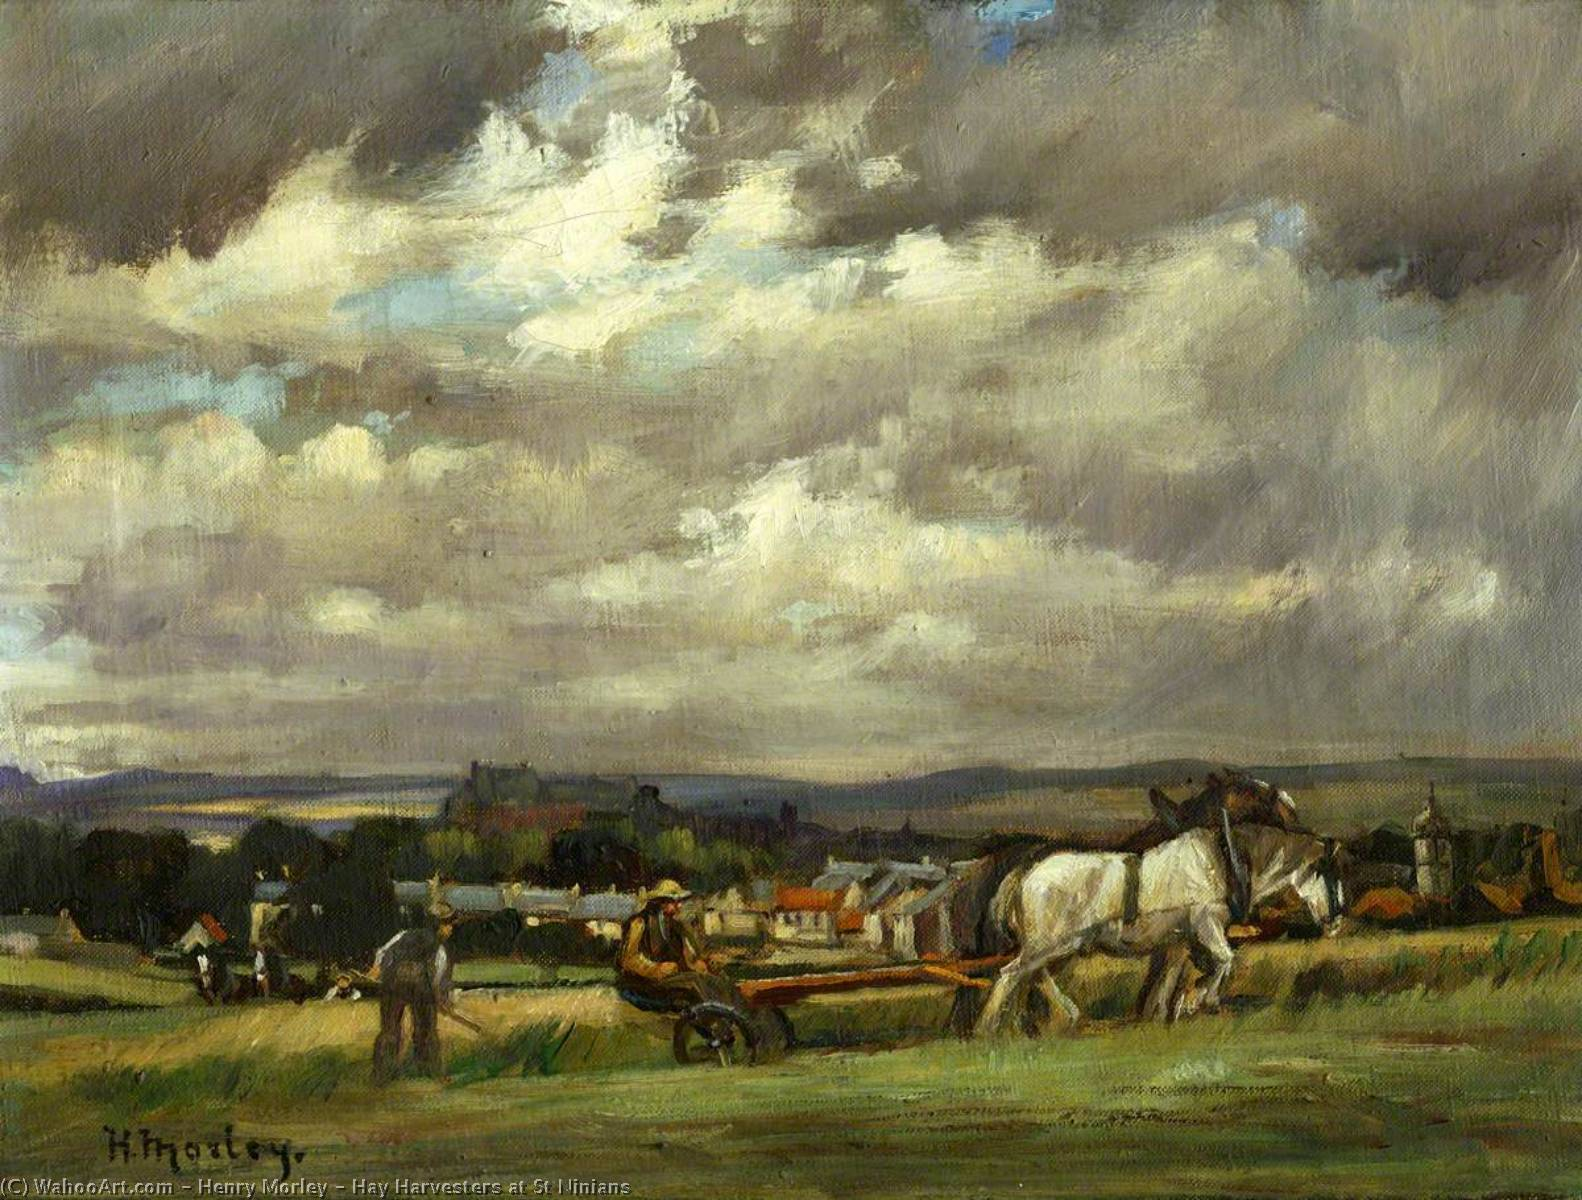 Hay Harvesters at St Ninians, Oil On Canvas by Henry Morley